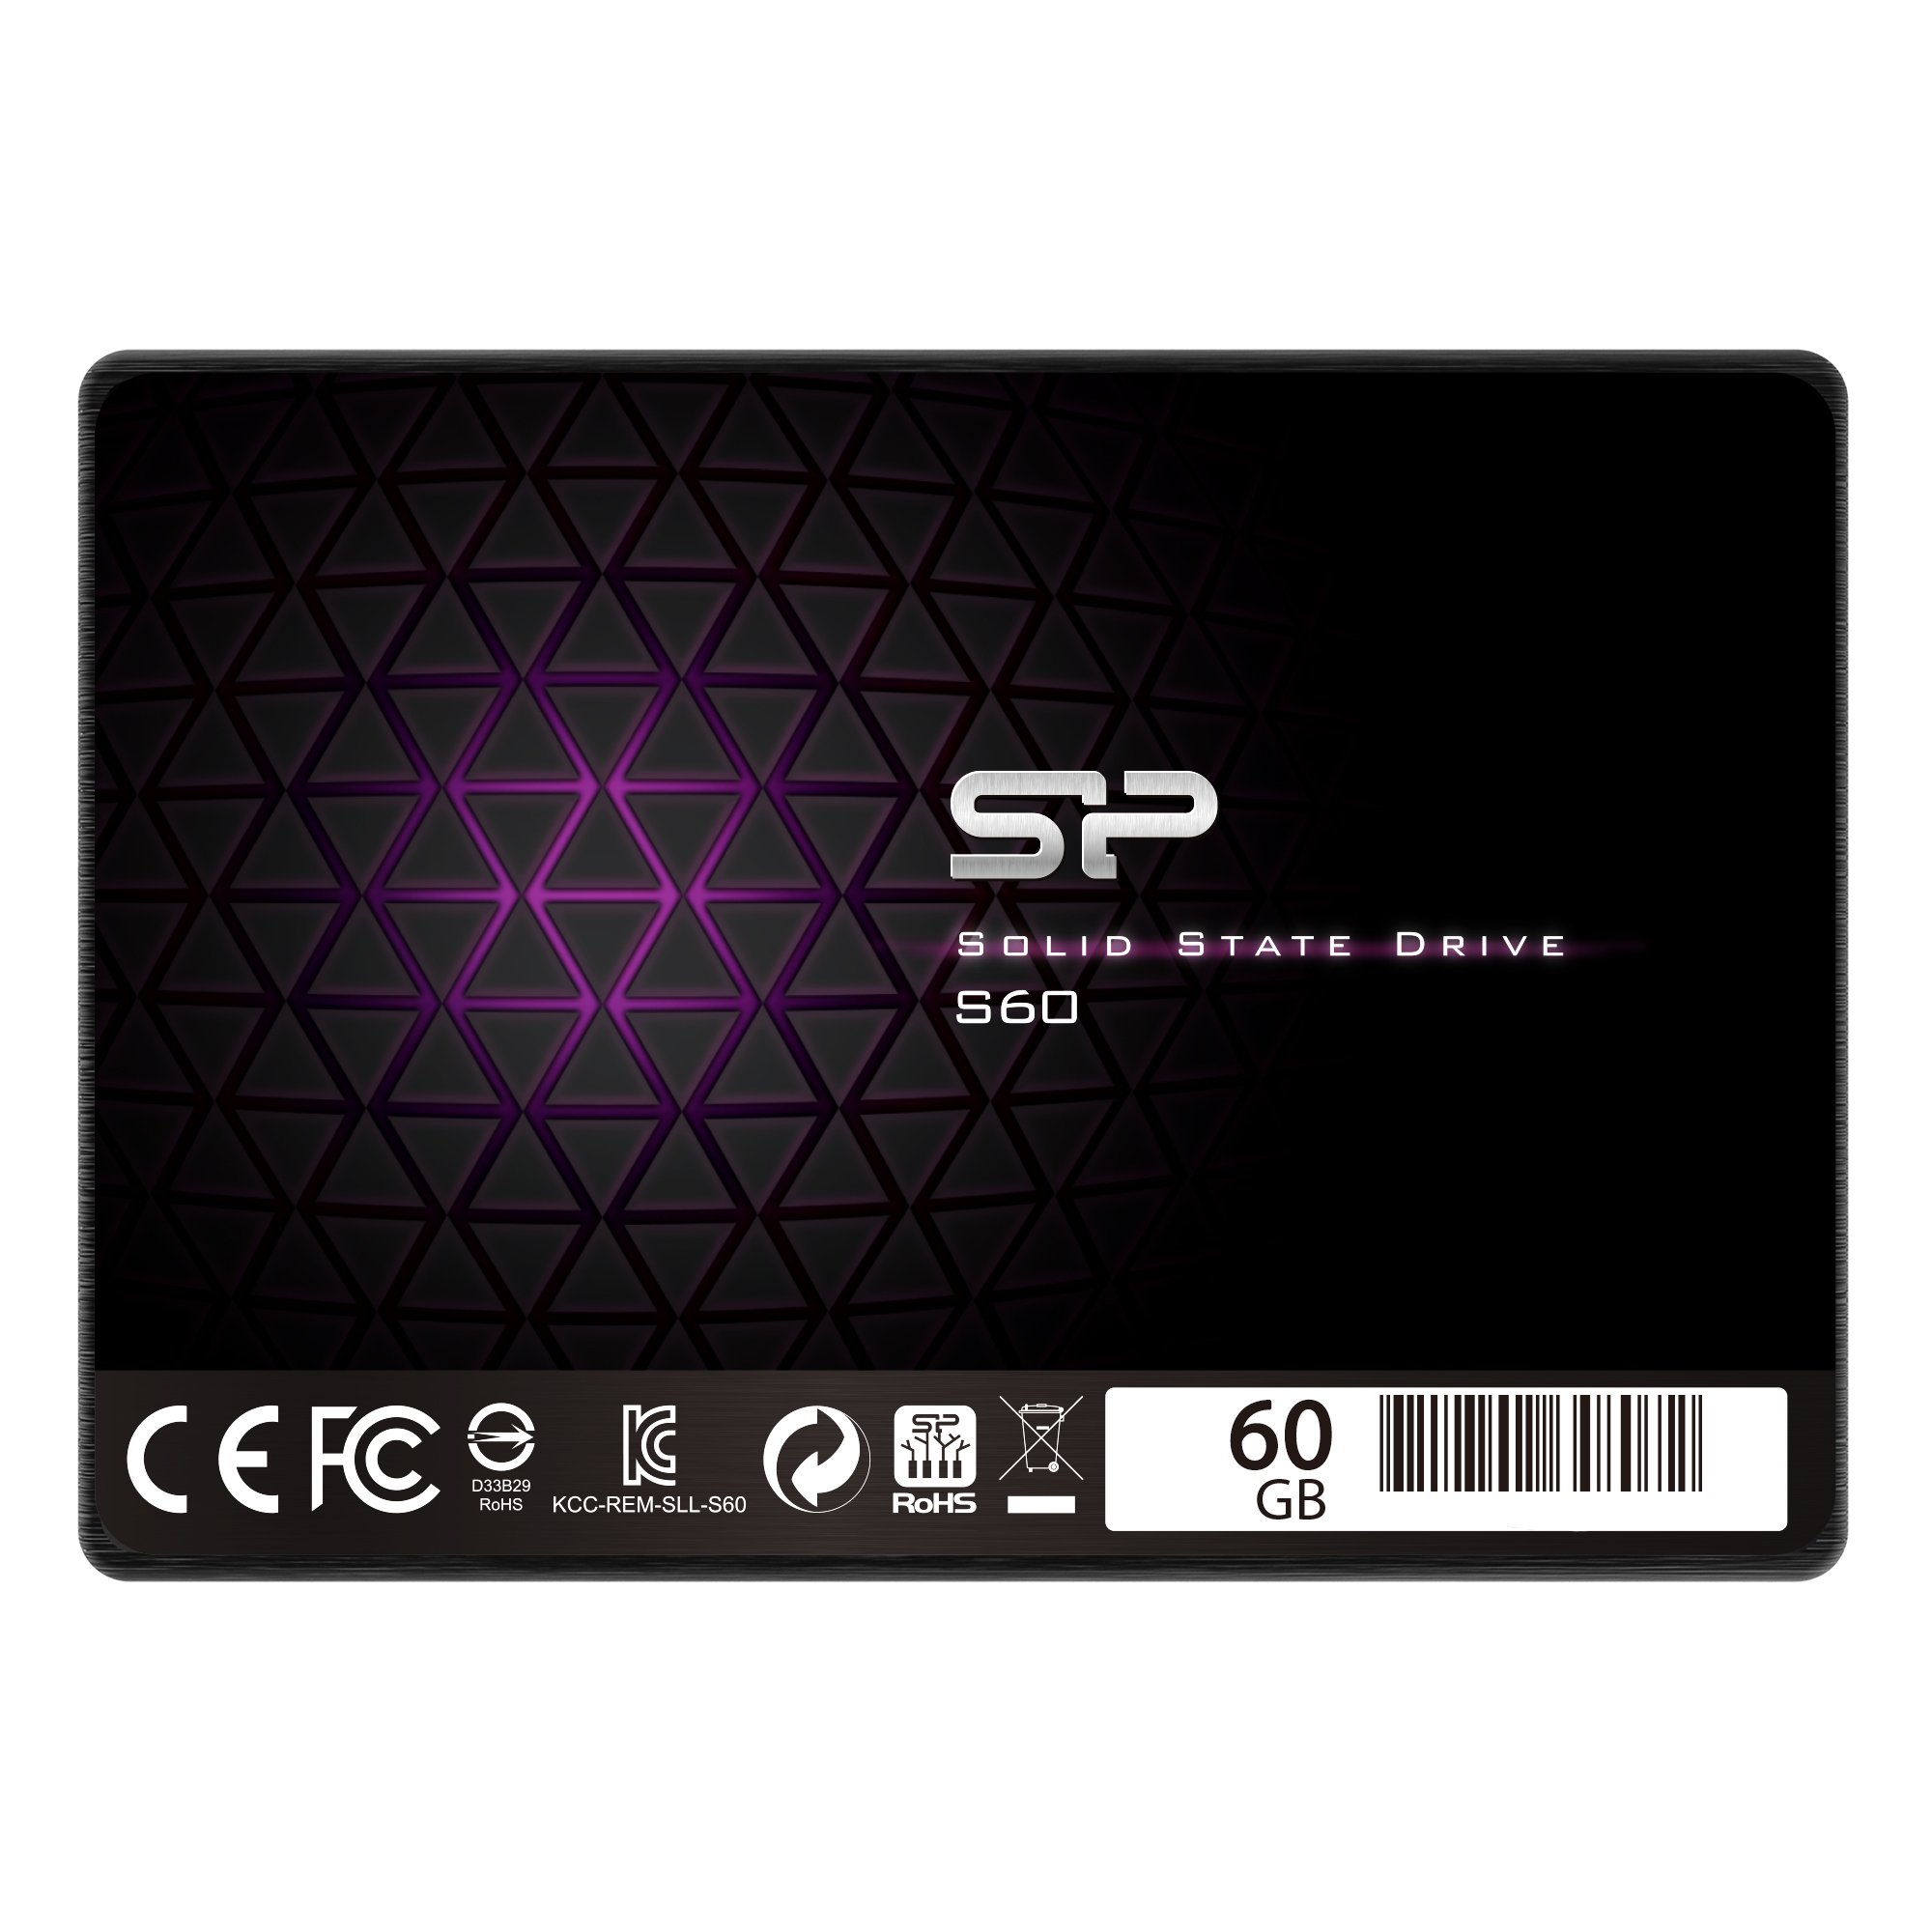 Silicon Power 60GB SSD S60 MLC High Endurance SATA III 2.5'' 7mm (0.28'') Internal Solid State Drive (SU060GBSS3S60S25AC)